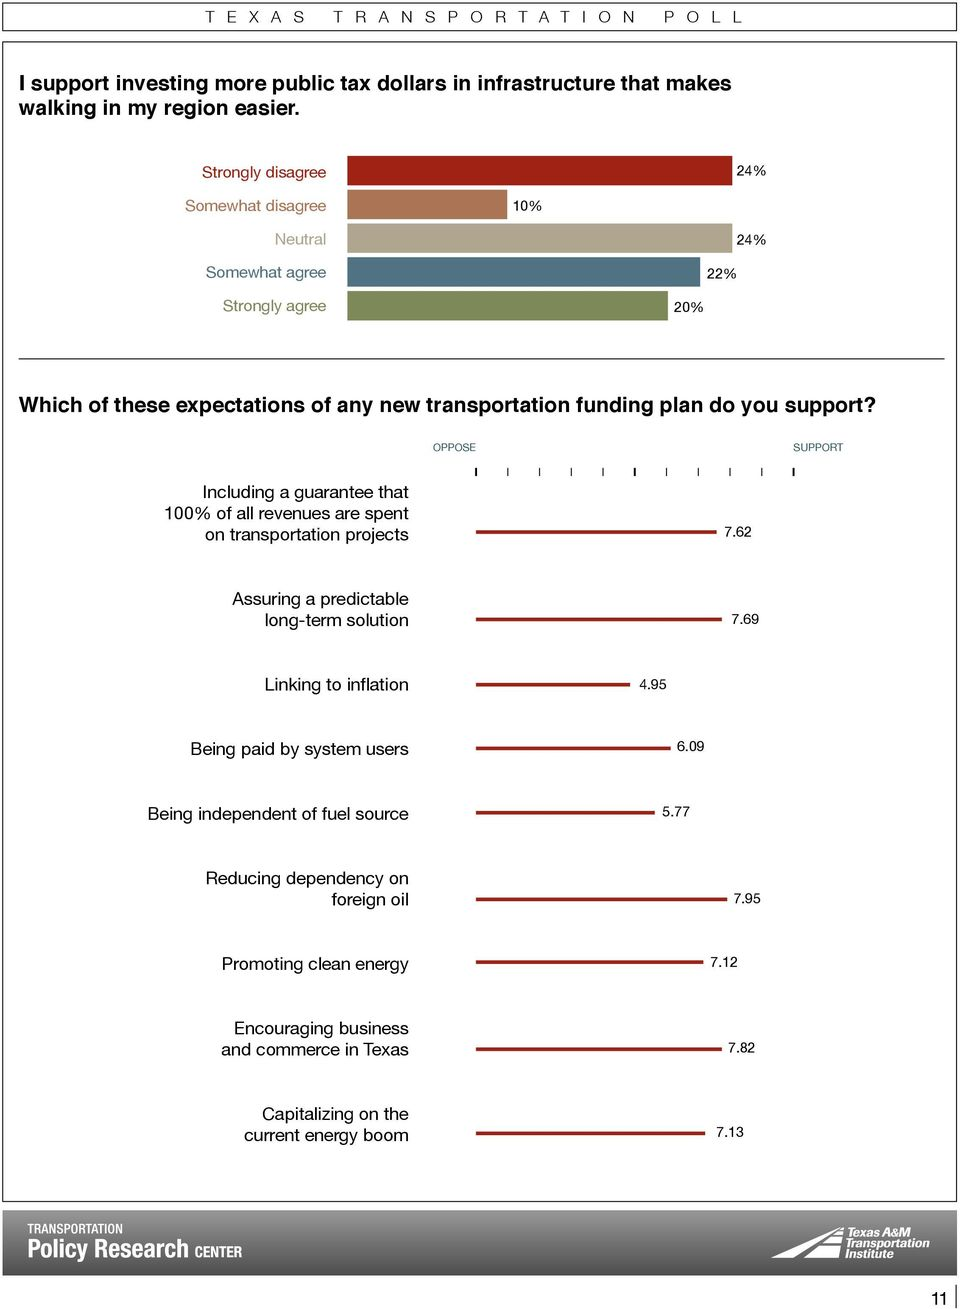 OPPOSE SUPPORT Including a guarantee that 100% of all revenues are spent on transportation projects 7.62 Assuring a predictable long-term solution 7.